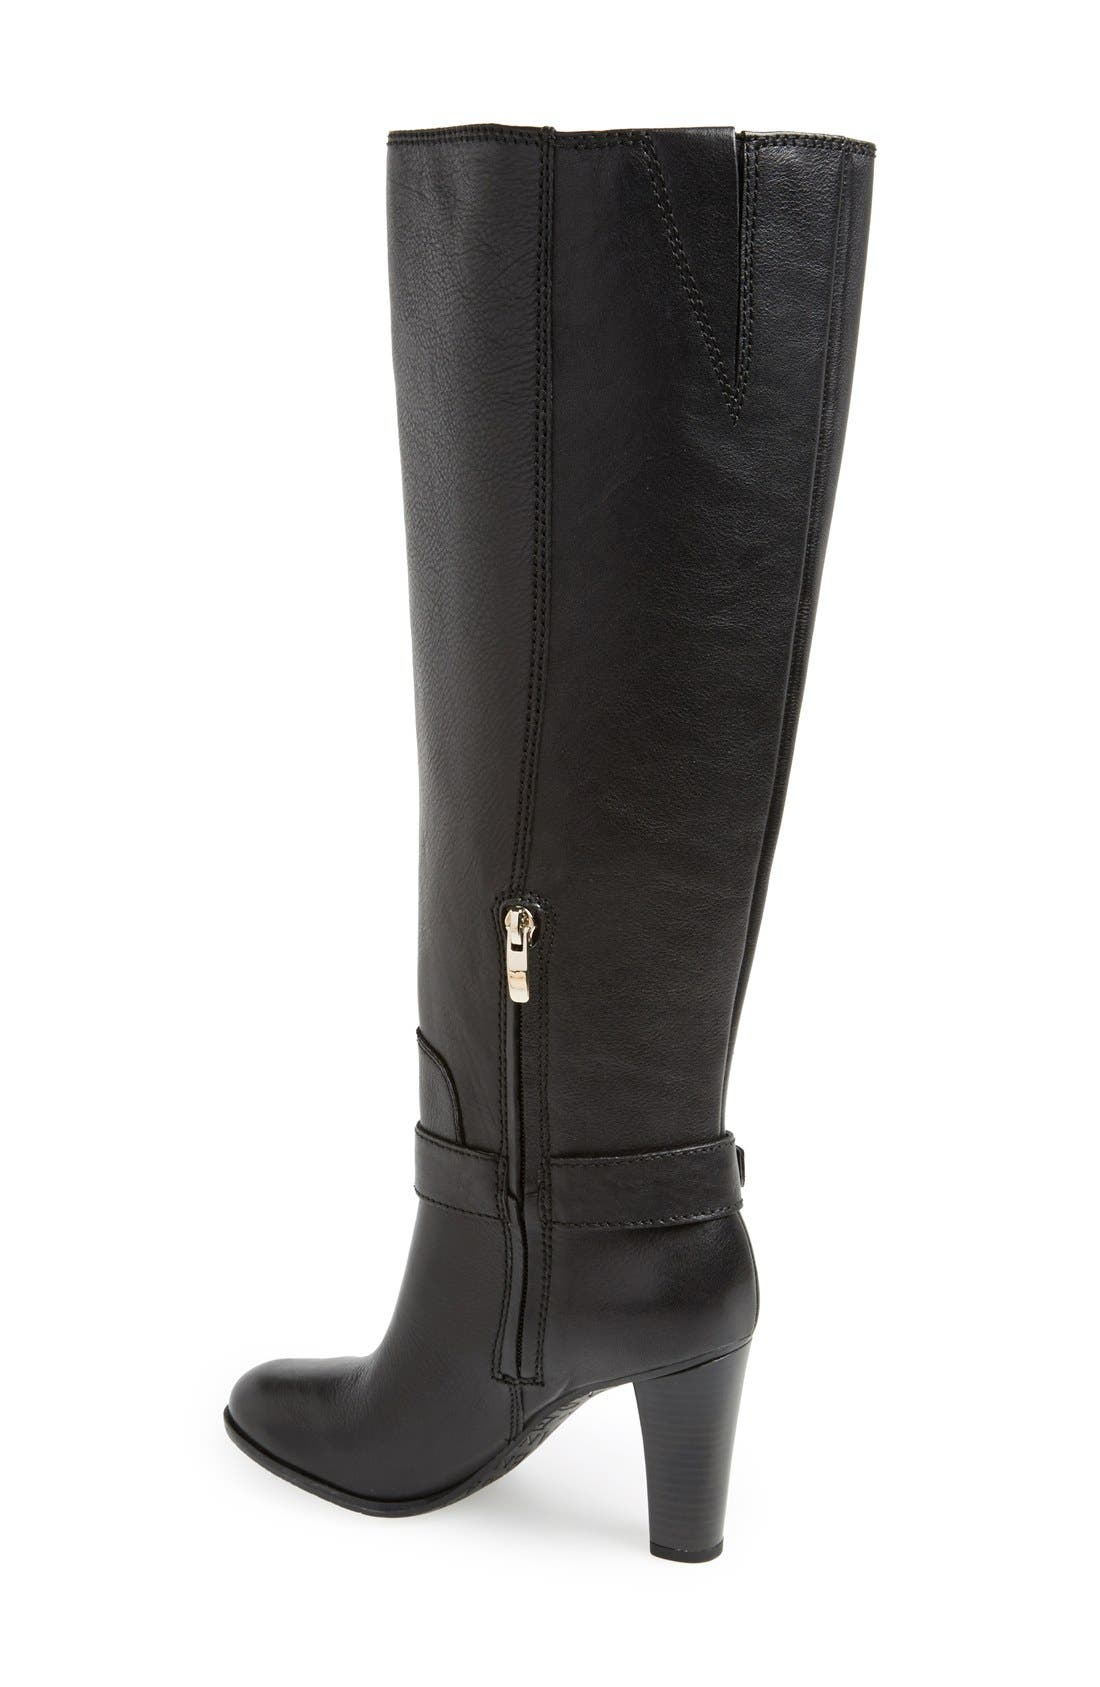 'Sumilo' Boot,                             Alternate thumbnail 2, color,                             Black Leather